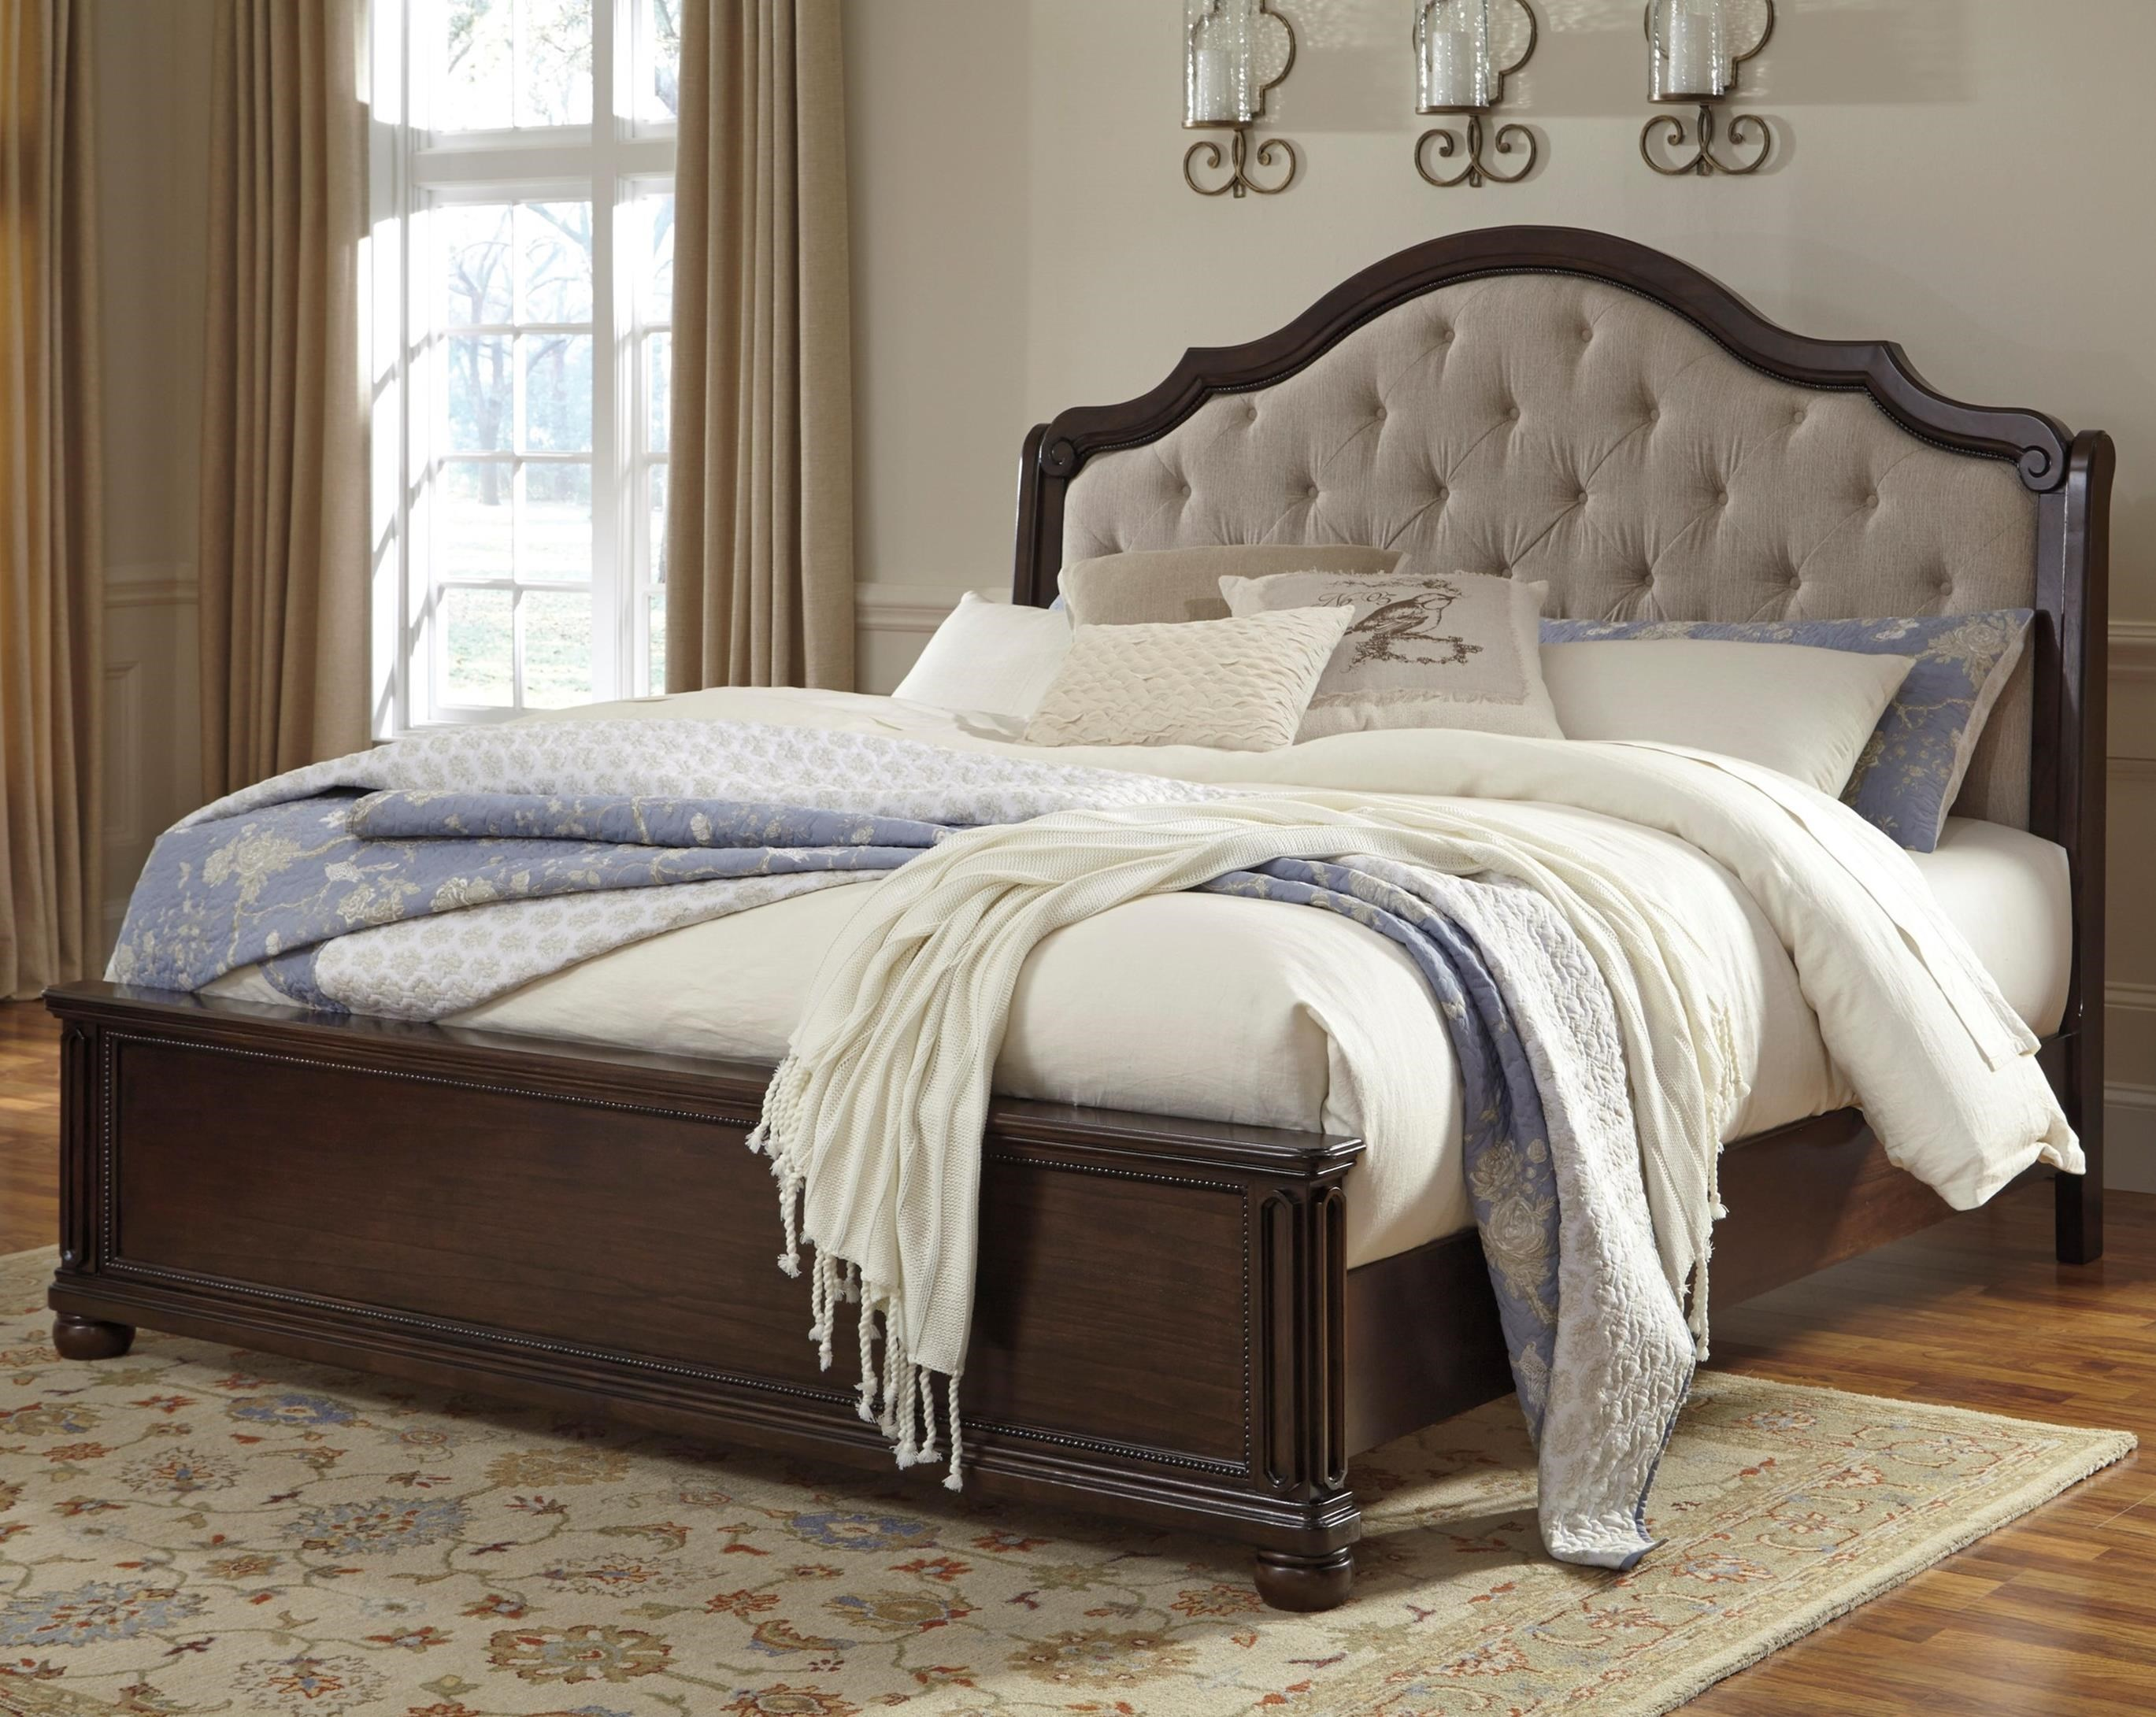 Signature Design by Ashley Moluxy King Bed with Upholstered Sleigh Headboard - Item Number: B596-58+56+97